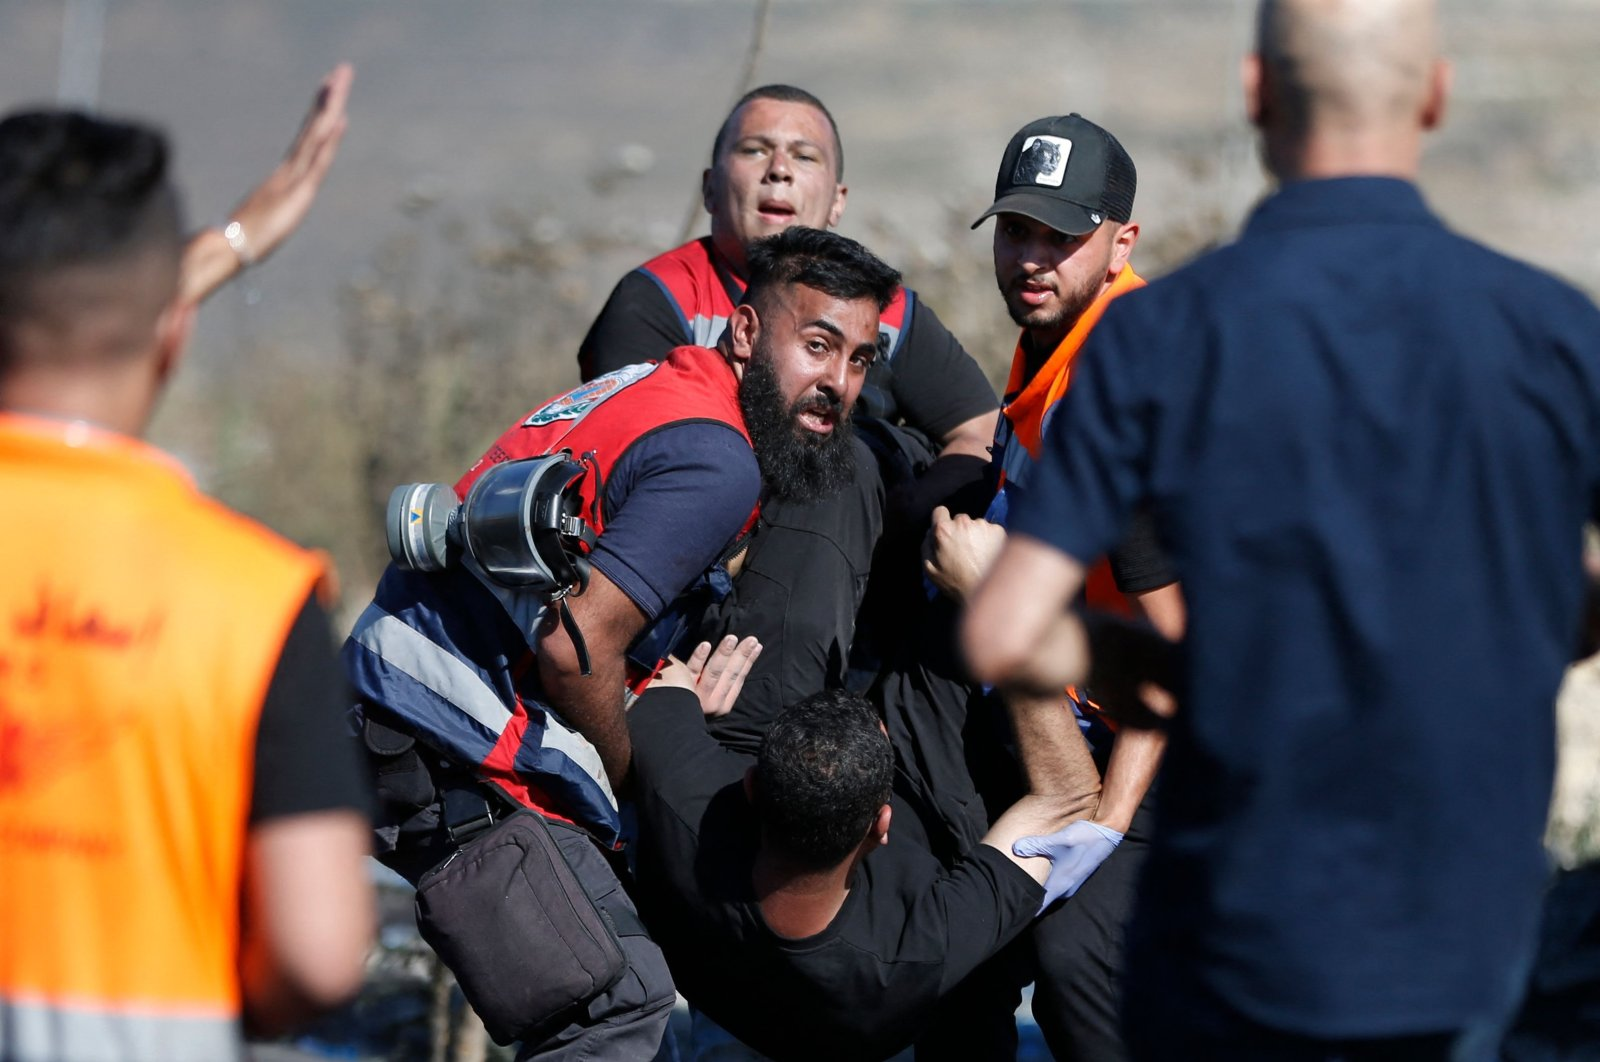 Palestinian paramedics evacuate a wounded protester injured by Israeli security forces near the settlement of Beit El and Ramallah in the occupied West Bank, Palestine, on May 17, 2021. (AFP Photo)